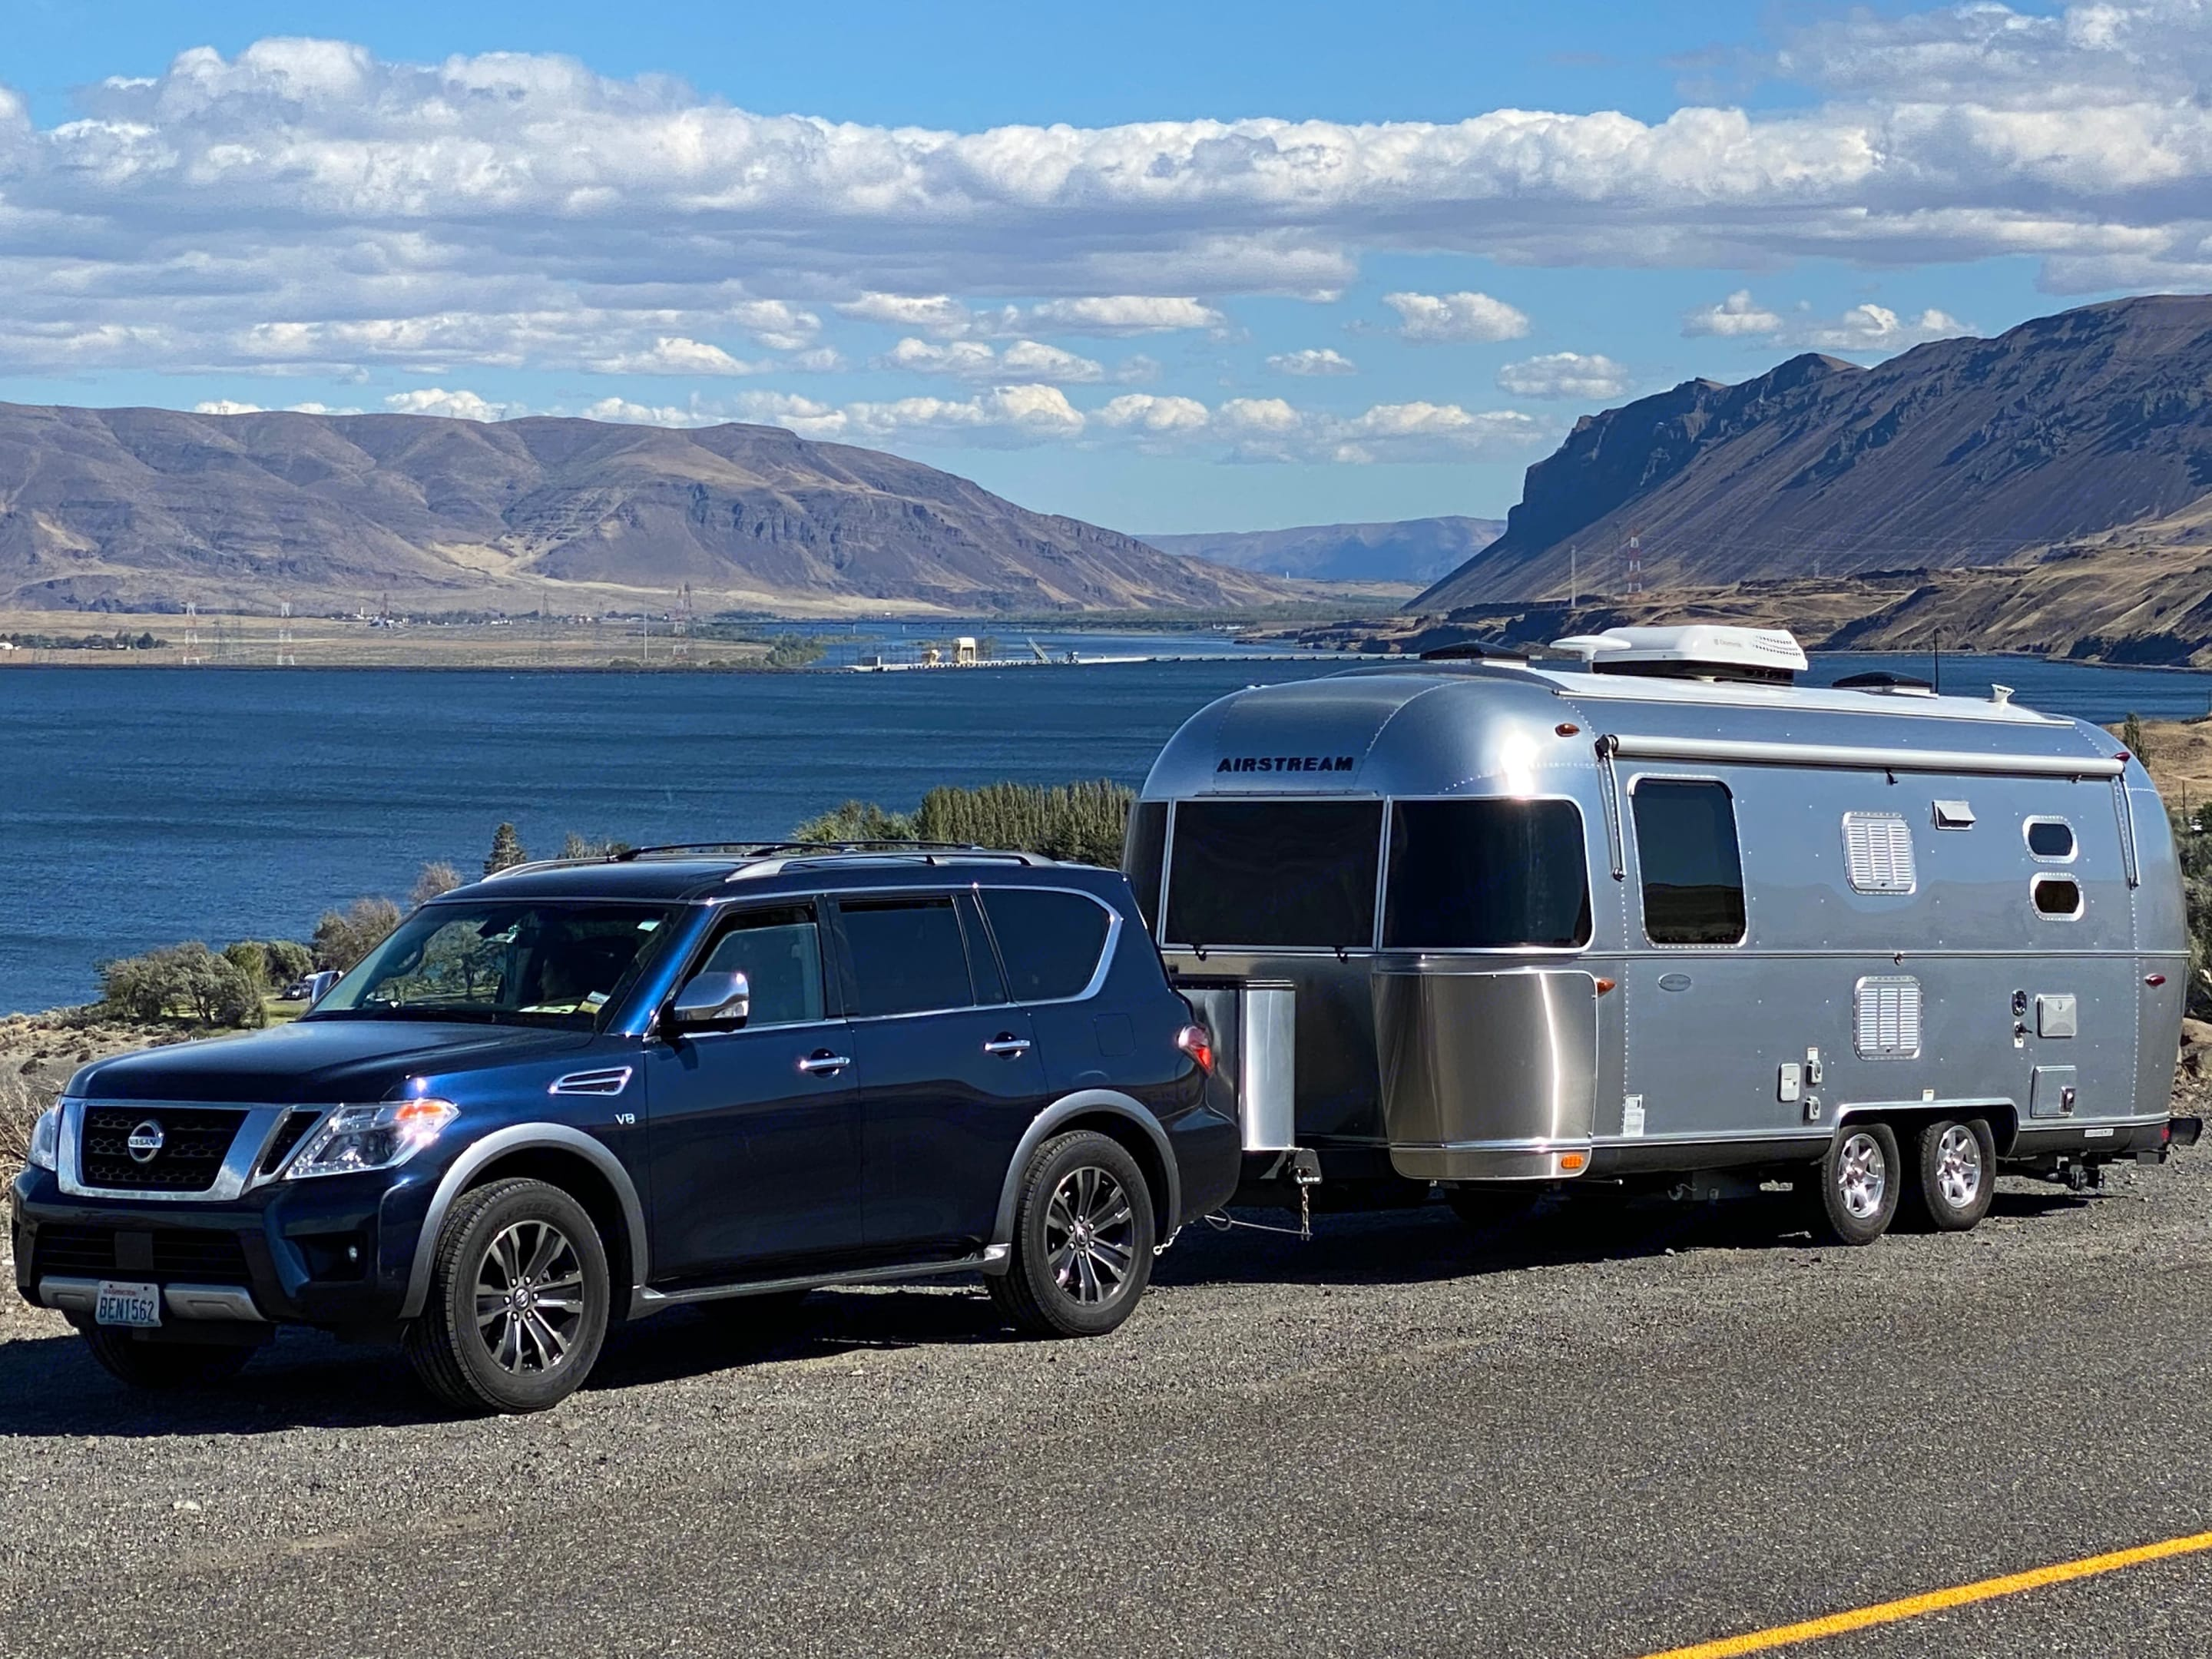 With our SUV @Gorge Washington. Airstream Flying Cloud 2016